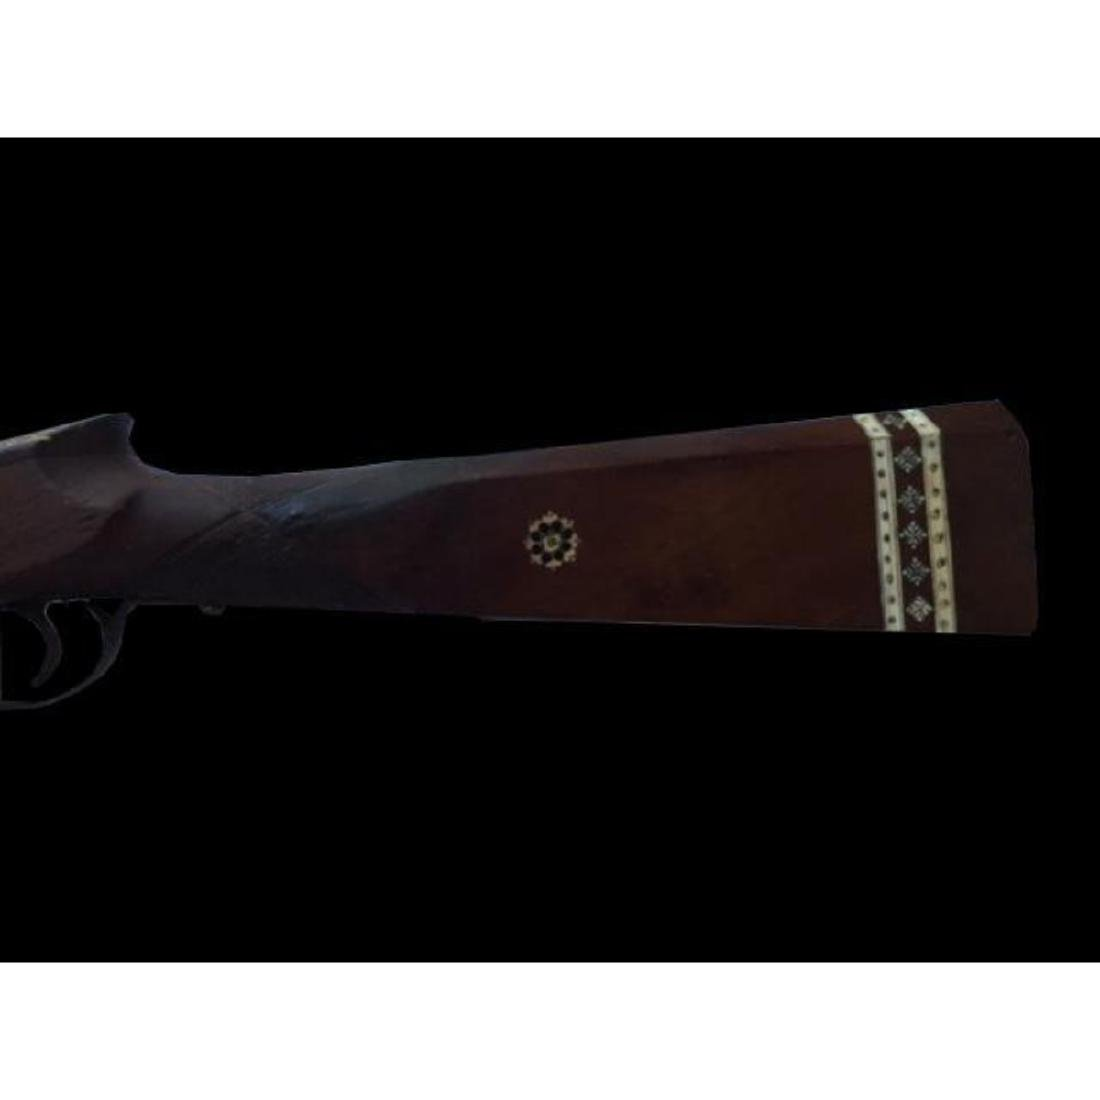 c1790 .700 Flintlock Rifle - 4